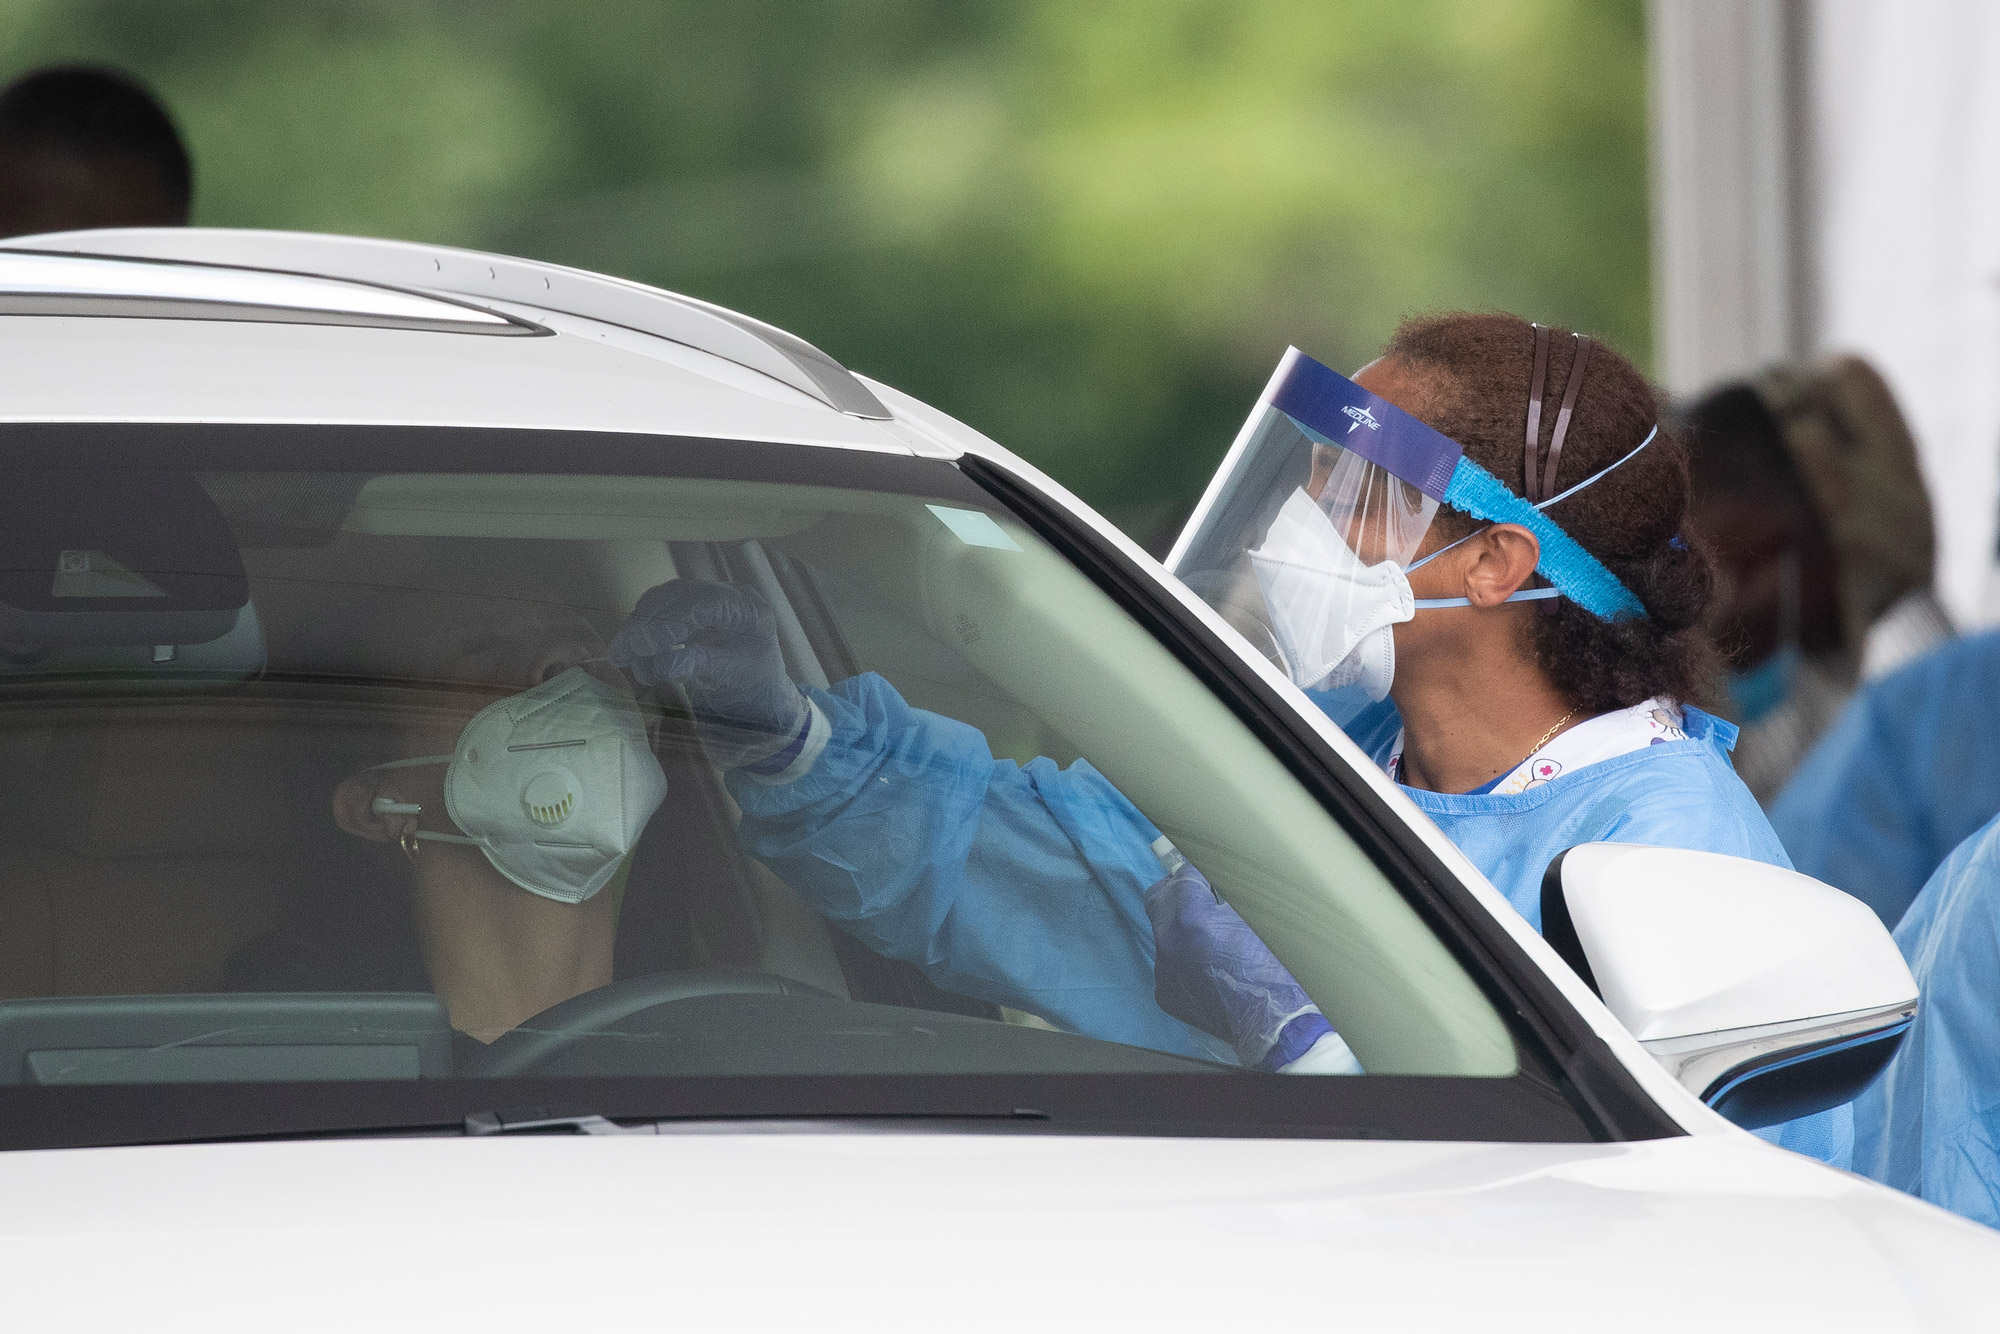 People are treated for COVID-19 at Dekalb County testing site on July 8 in Tucker, Georgia.